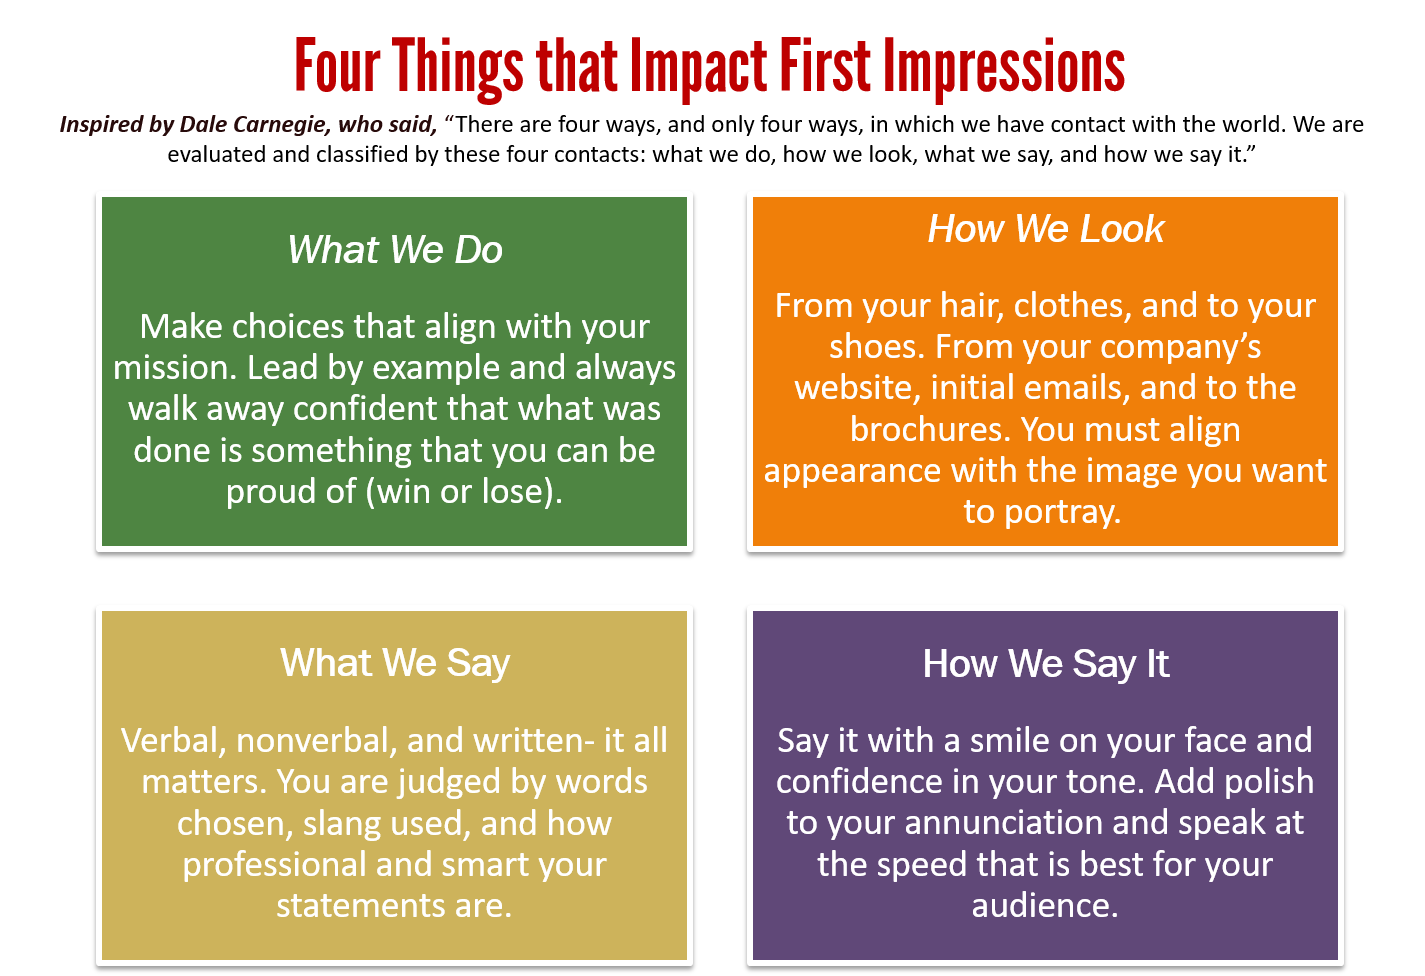 Four Things that Impact First Impressions